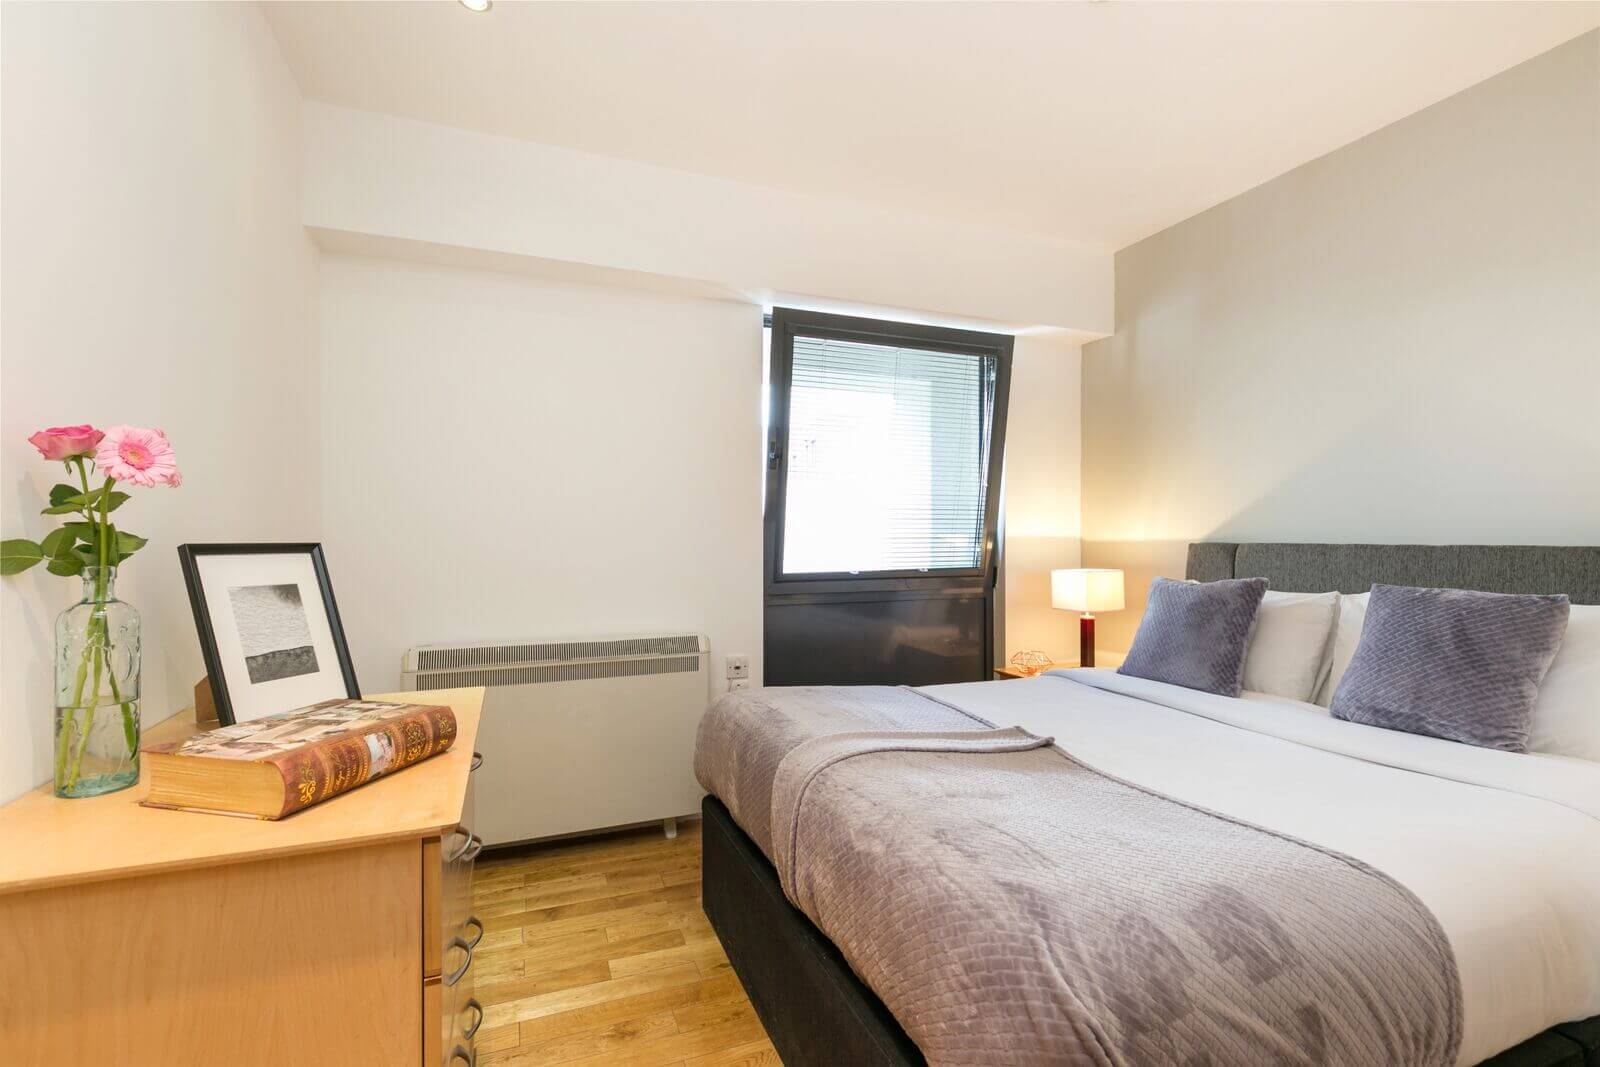 Serviced-Apartments-Maida-Vale,-London---Maida-Vale-Aparthotel-I-Free-Wifi-and-Weekly-Housekeeping,-BOOK-NOW-+44-208-691-3920-for-the-Best-Discounted-Rates!